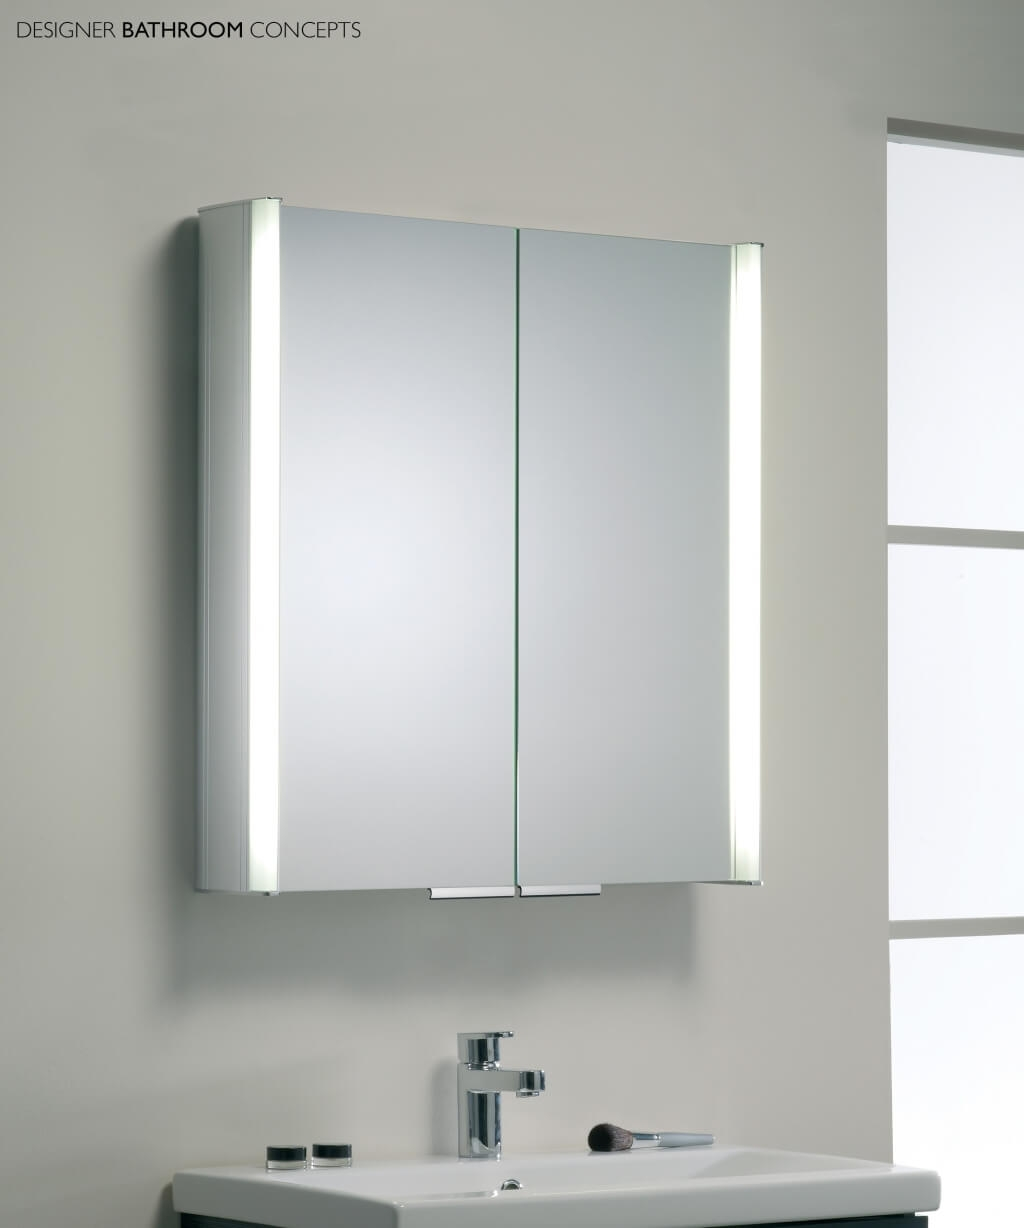 Bathroom Illuminated Mirror Cabinet